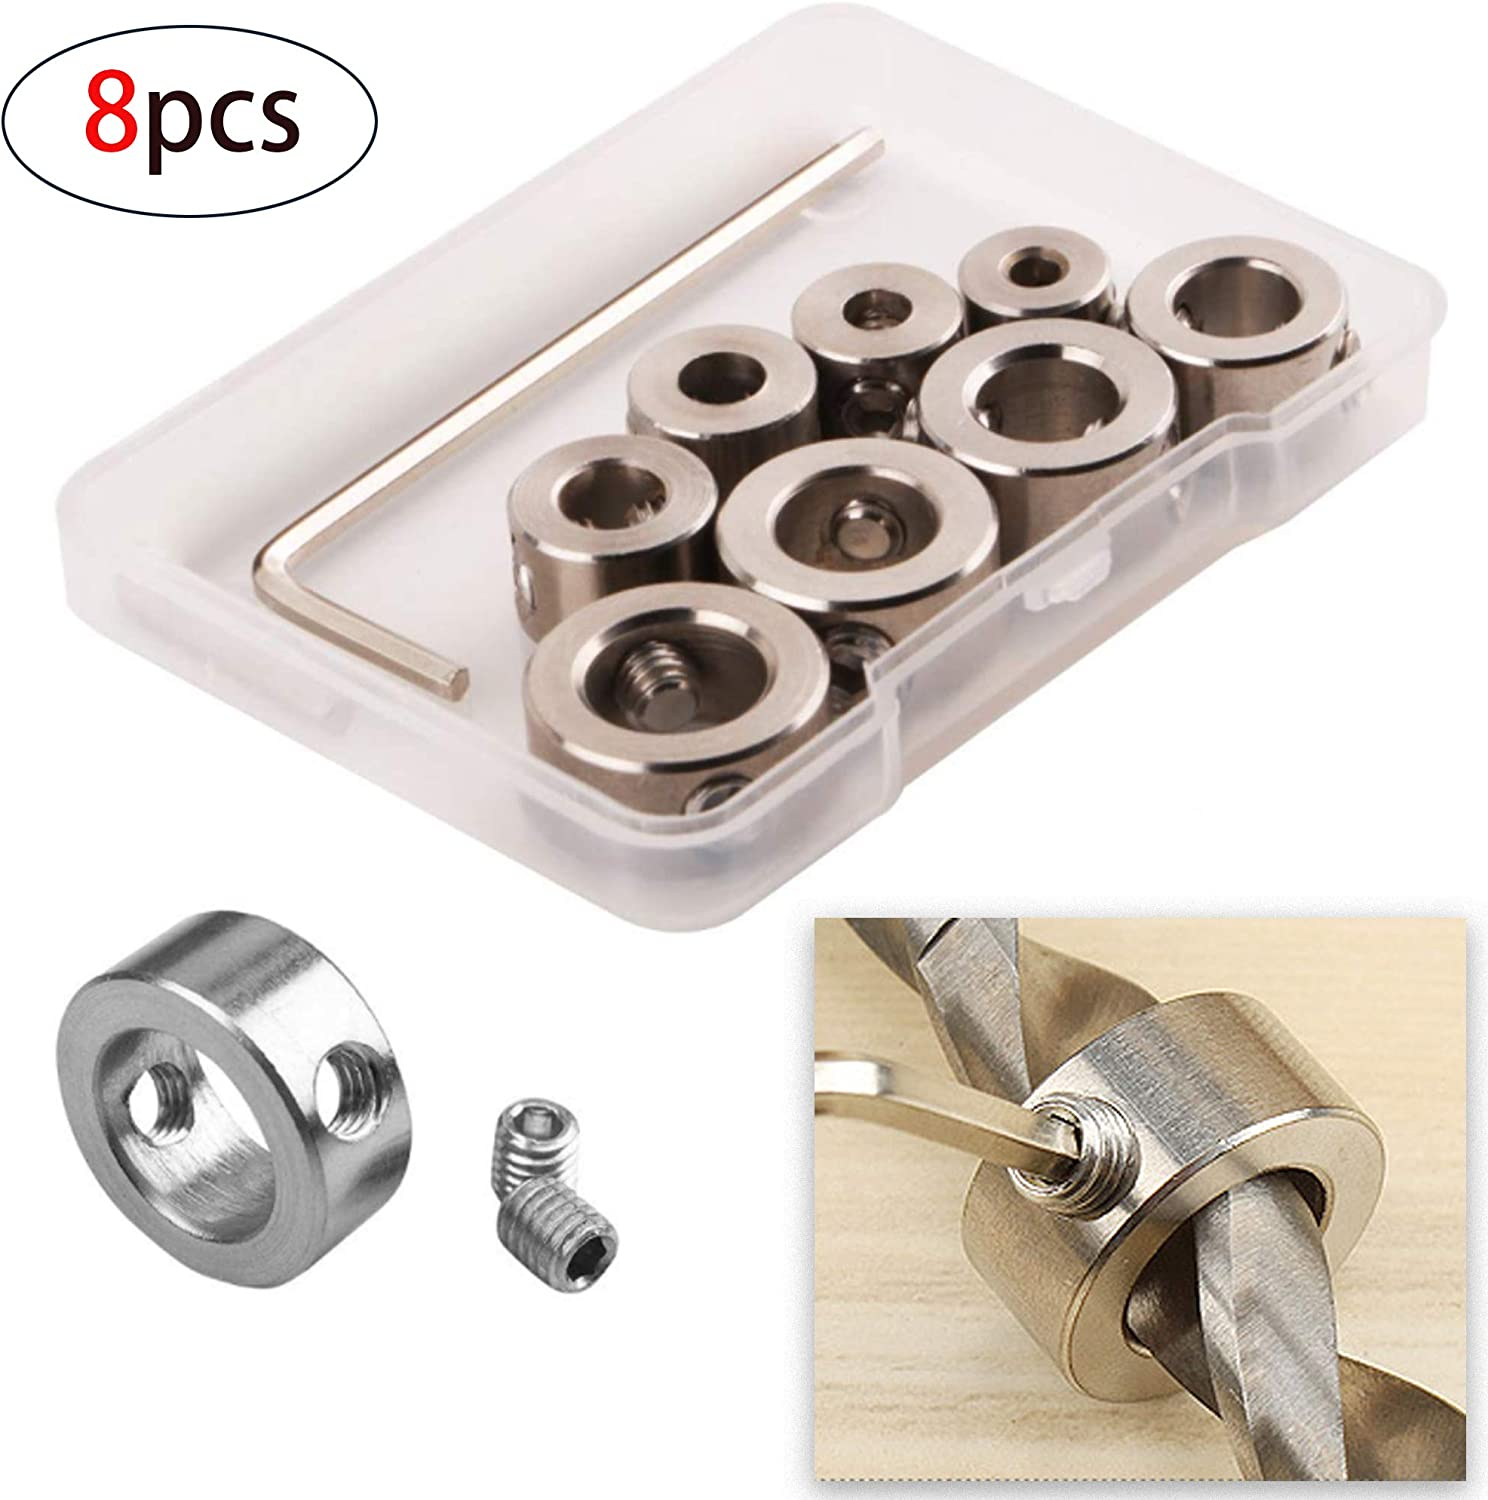 7pcs Drill Depth Stop Collars Dowel Shaft Chuck Hex Wrench Consistent